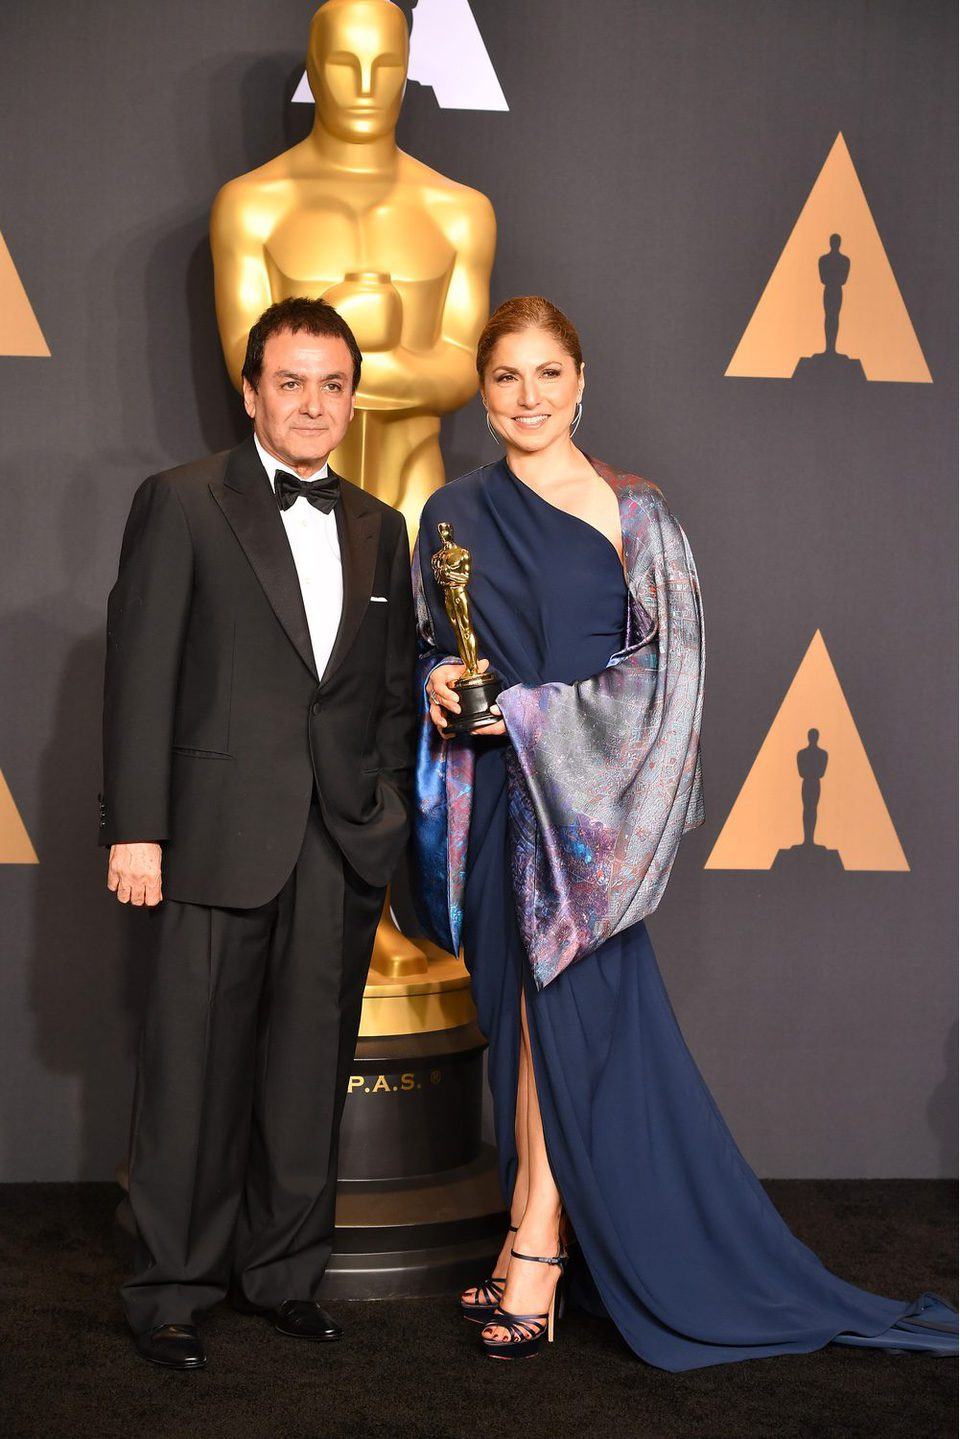 Firouz Naderi y Anousheh Ansari picked up the Best Foreign Language Film's Oscar for 'The Salesman'